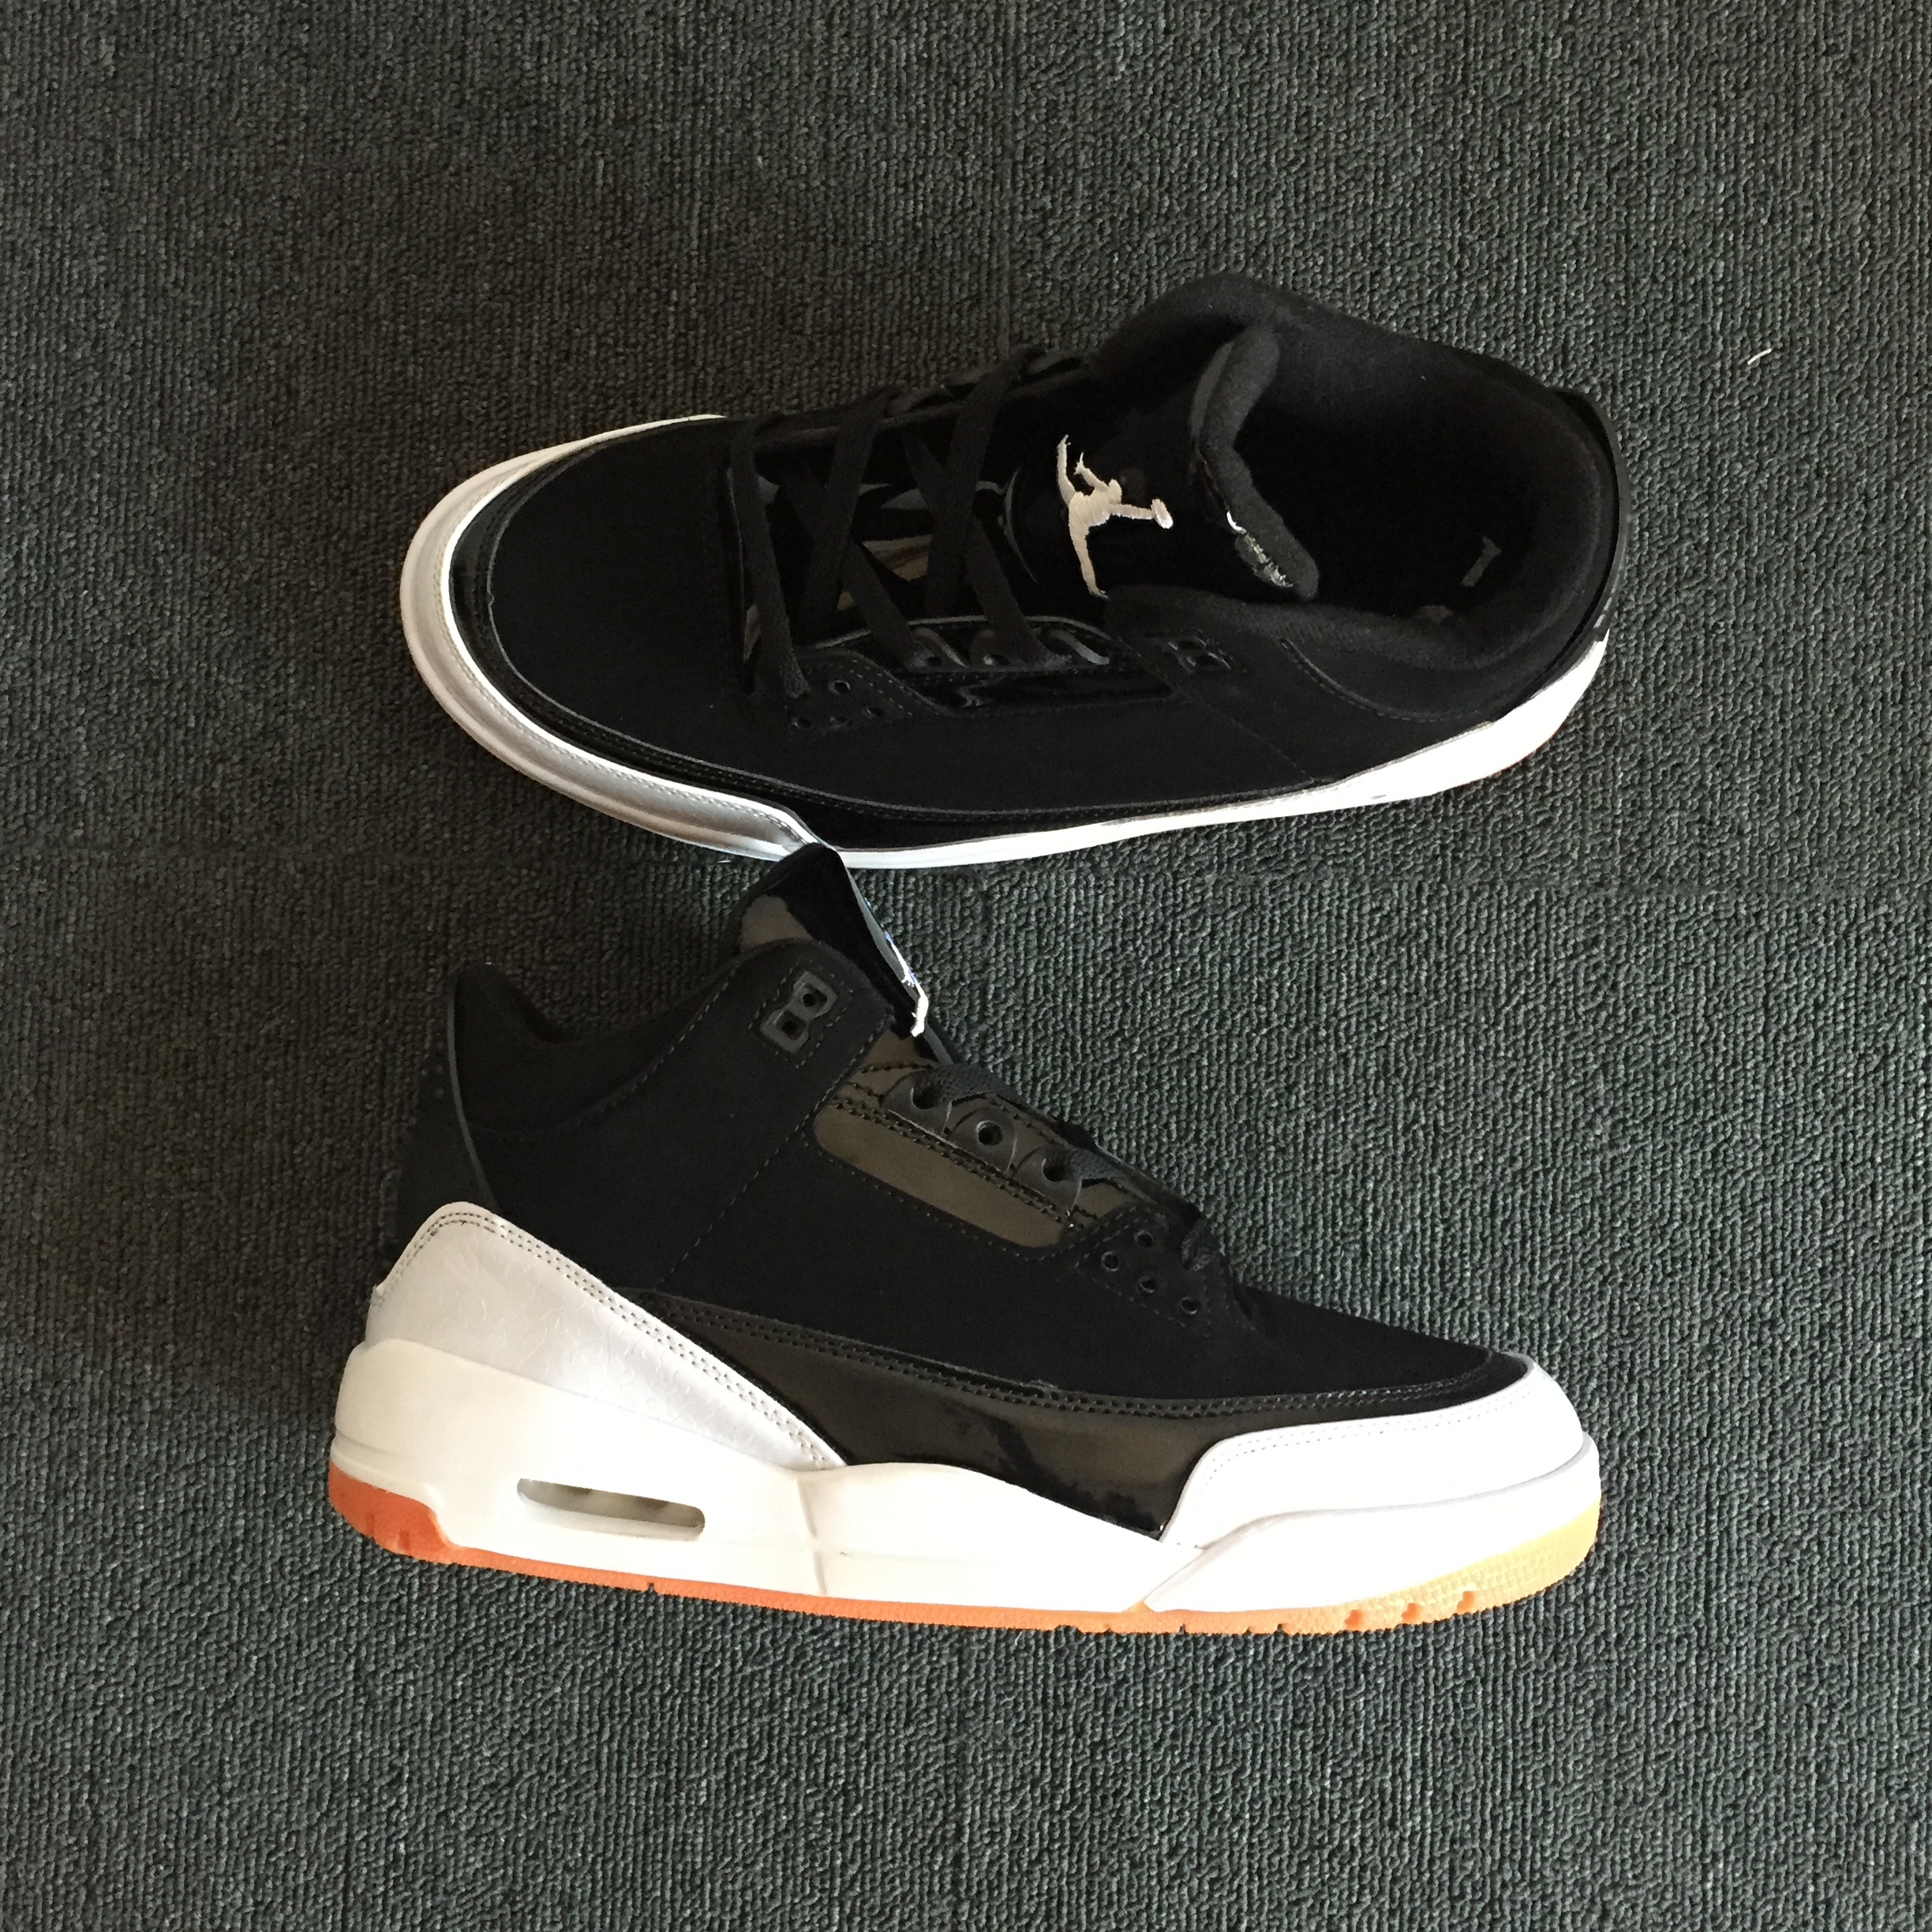 Air Jordan 3 Retro Black Gum Sole